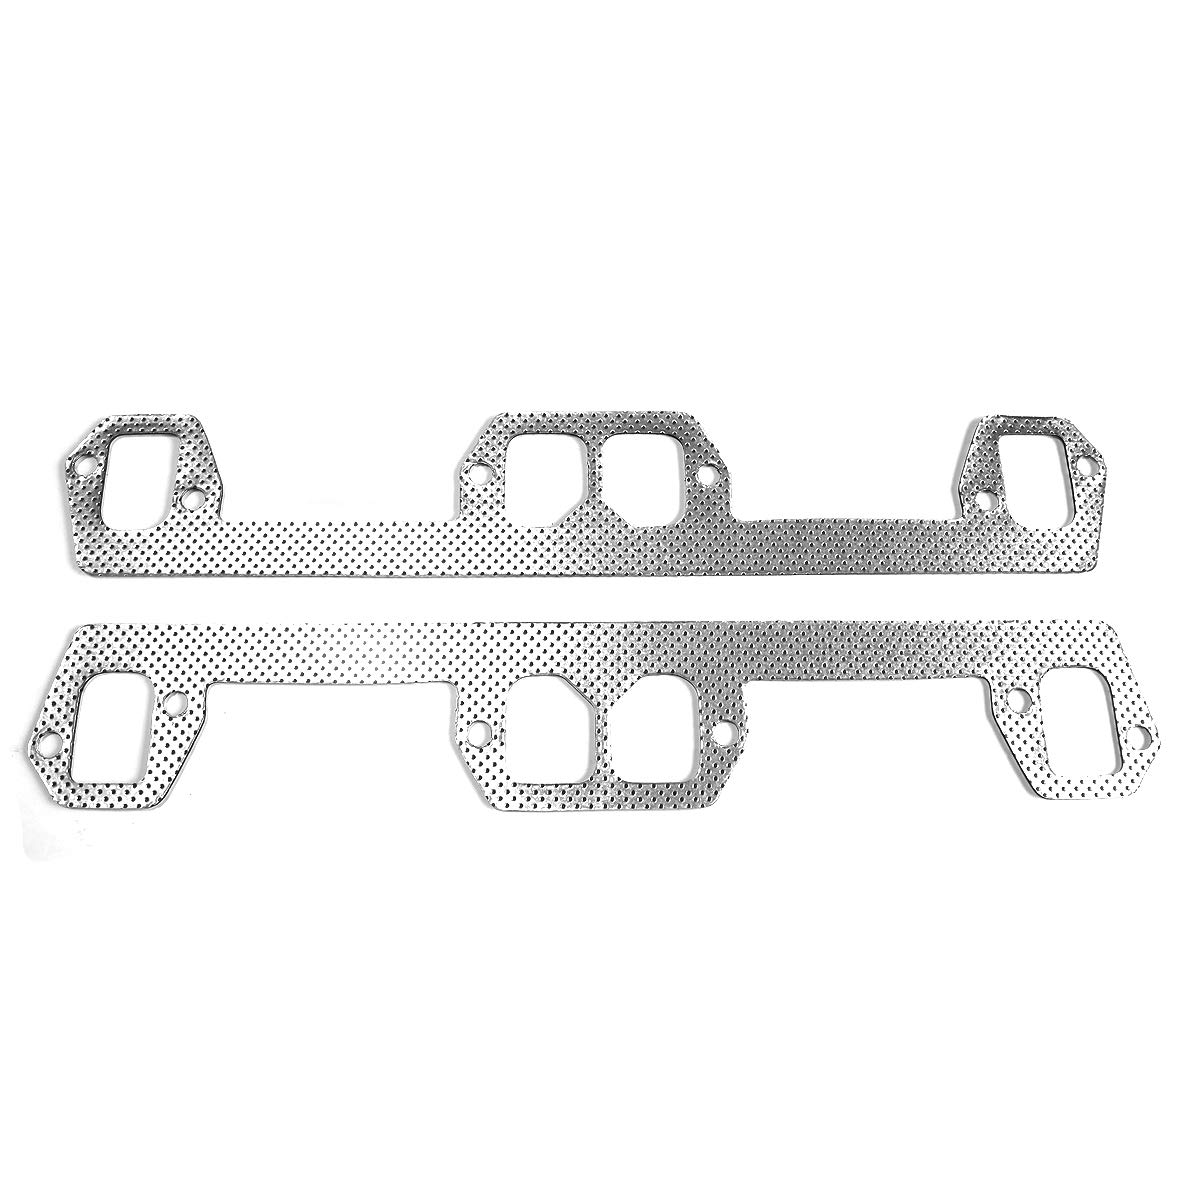 Replacement Parts Aluminum Exhaust Manifold Header Gasket Set for ...